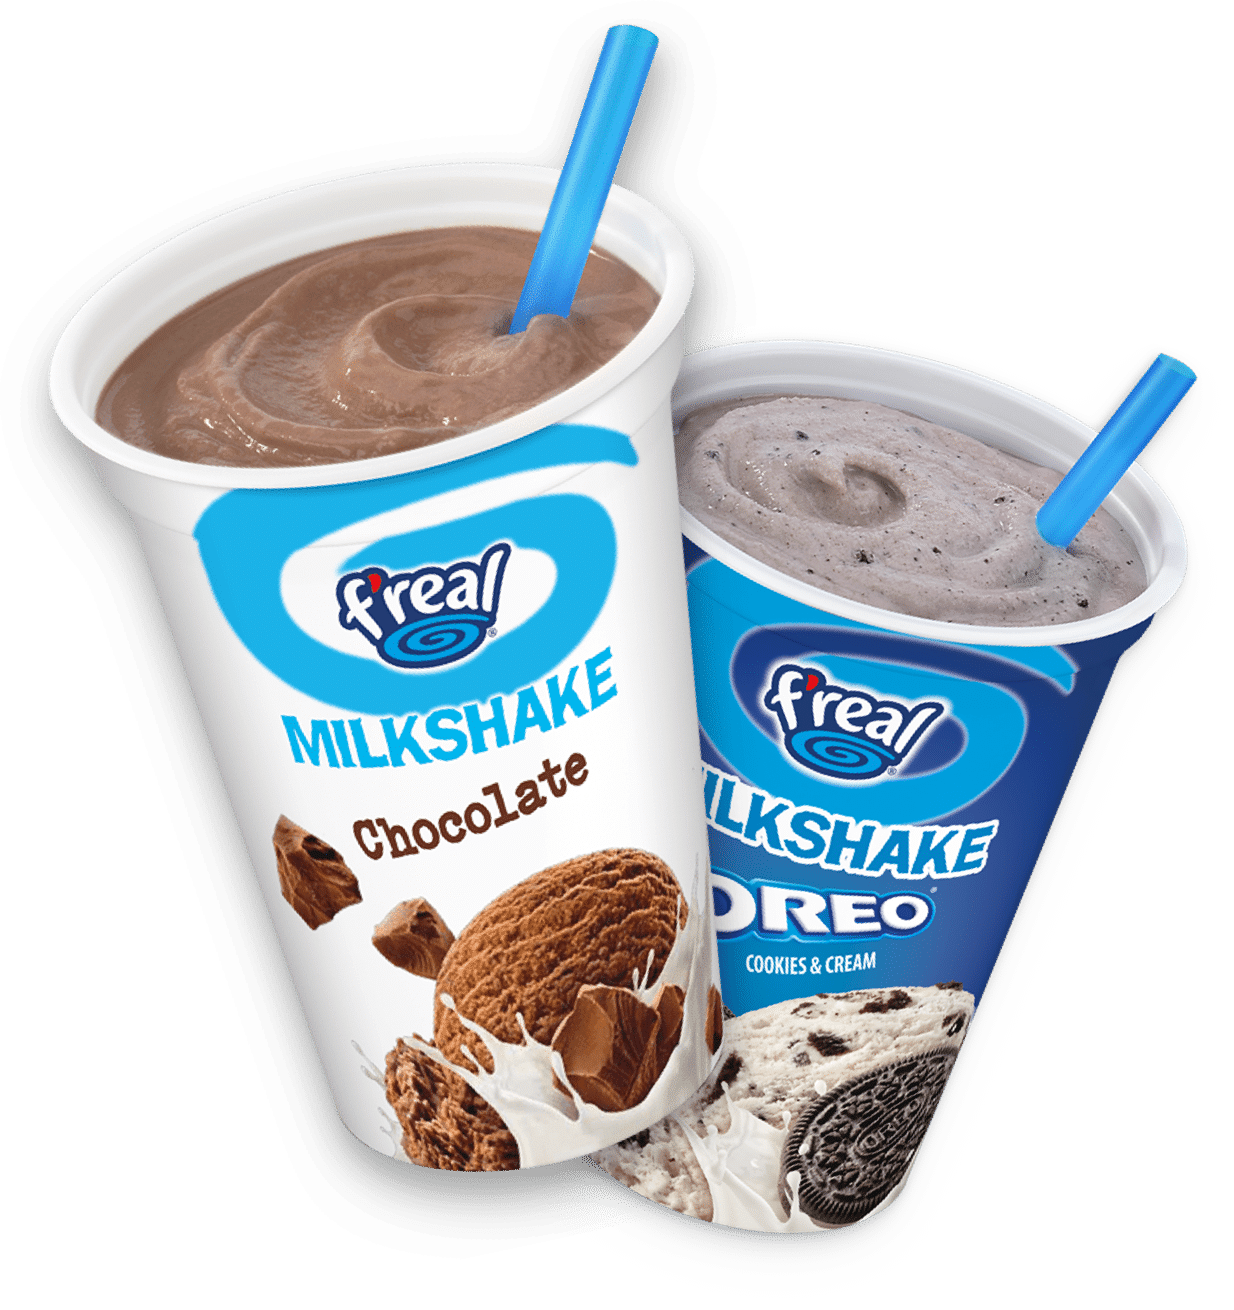 f'real Foods - Challenge Image